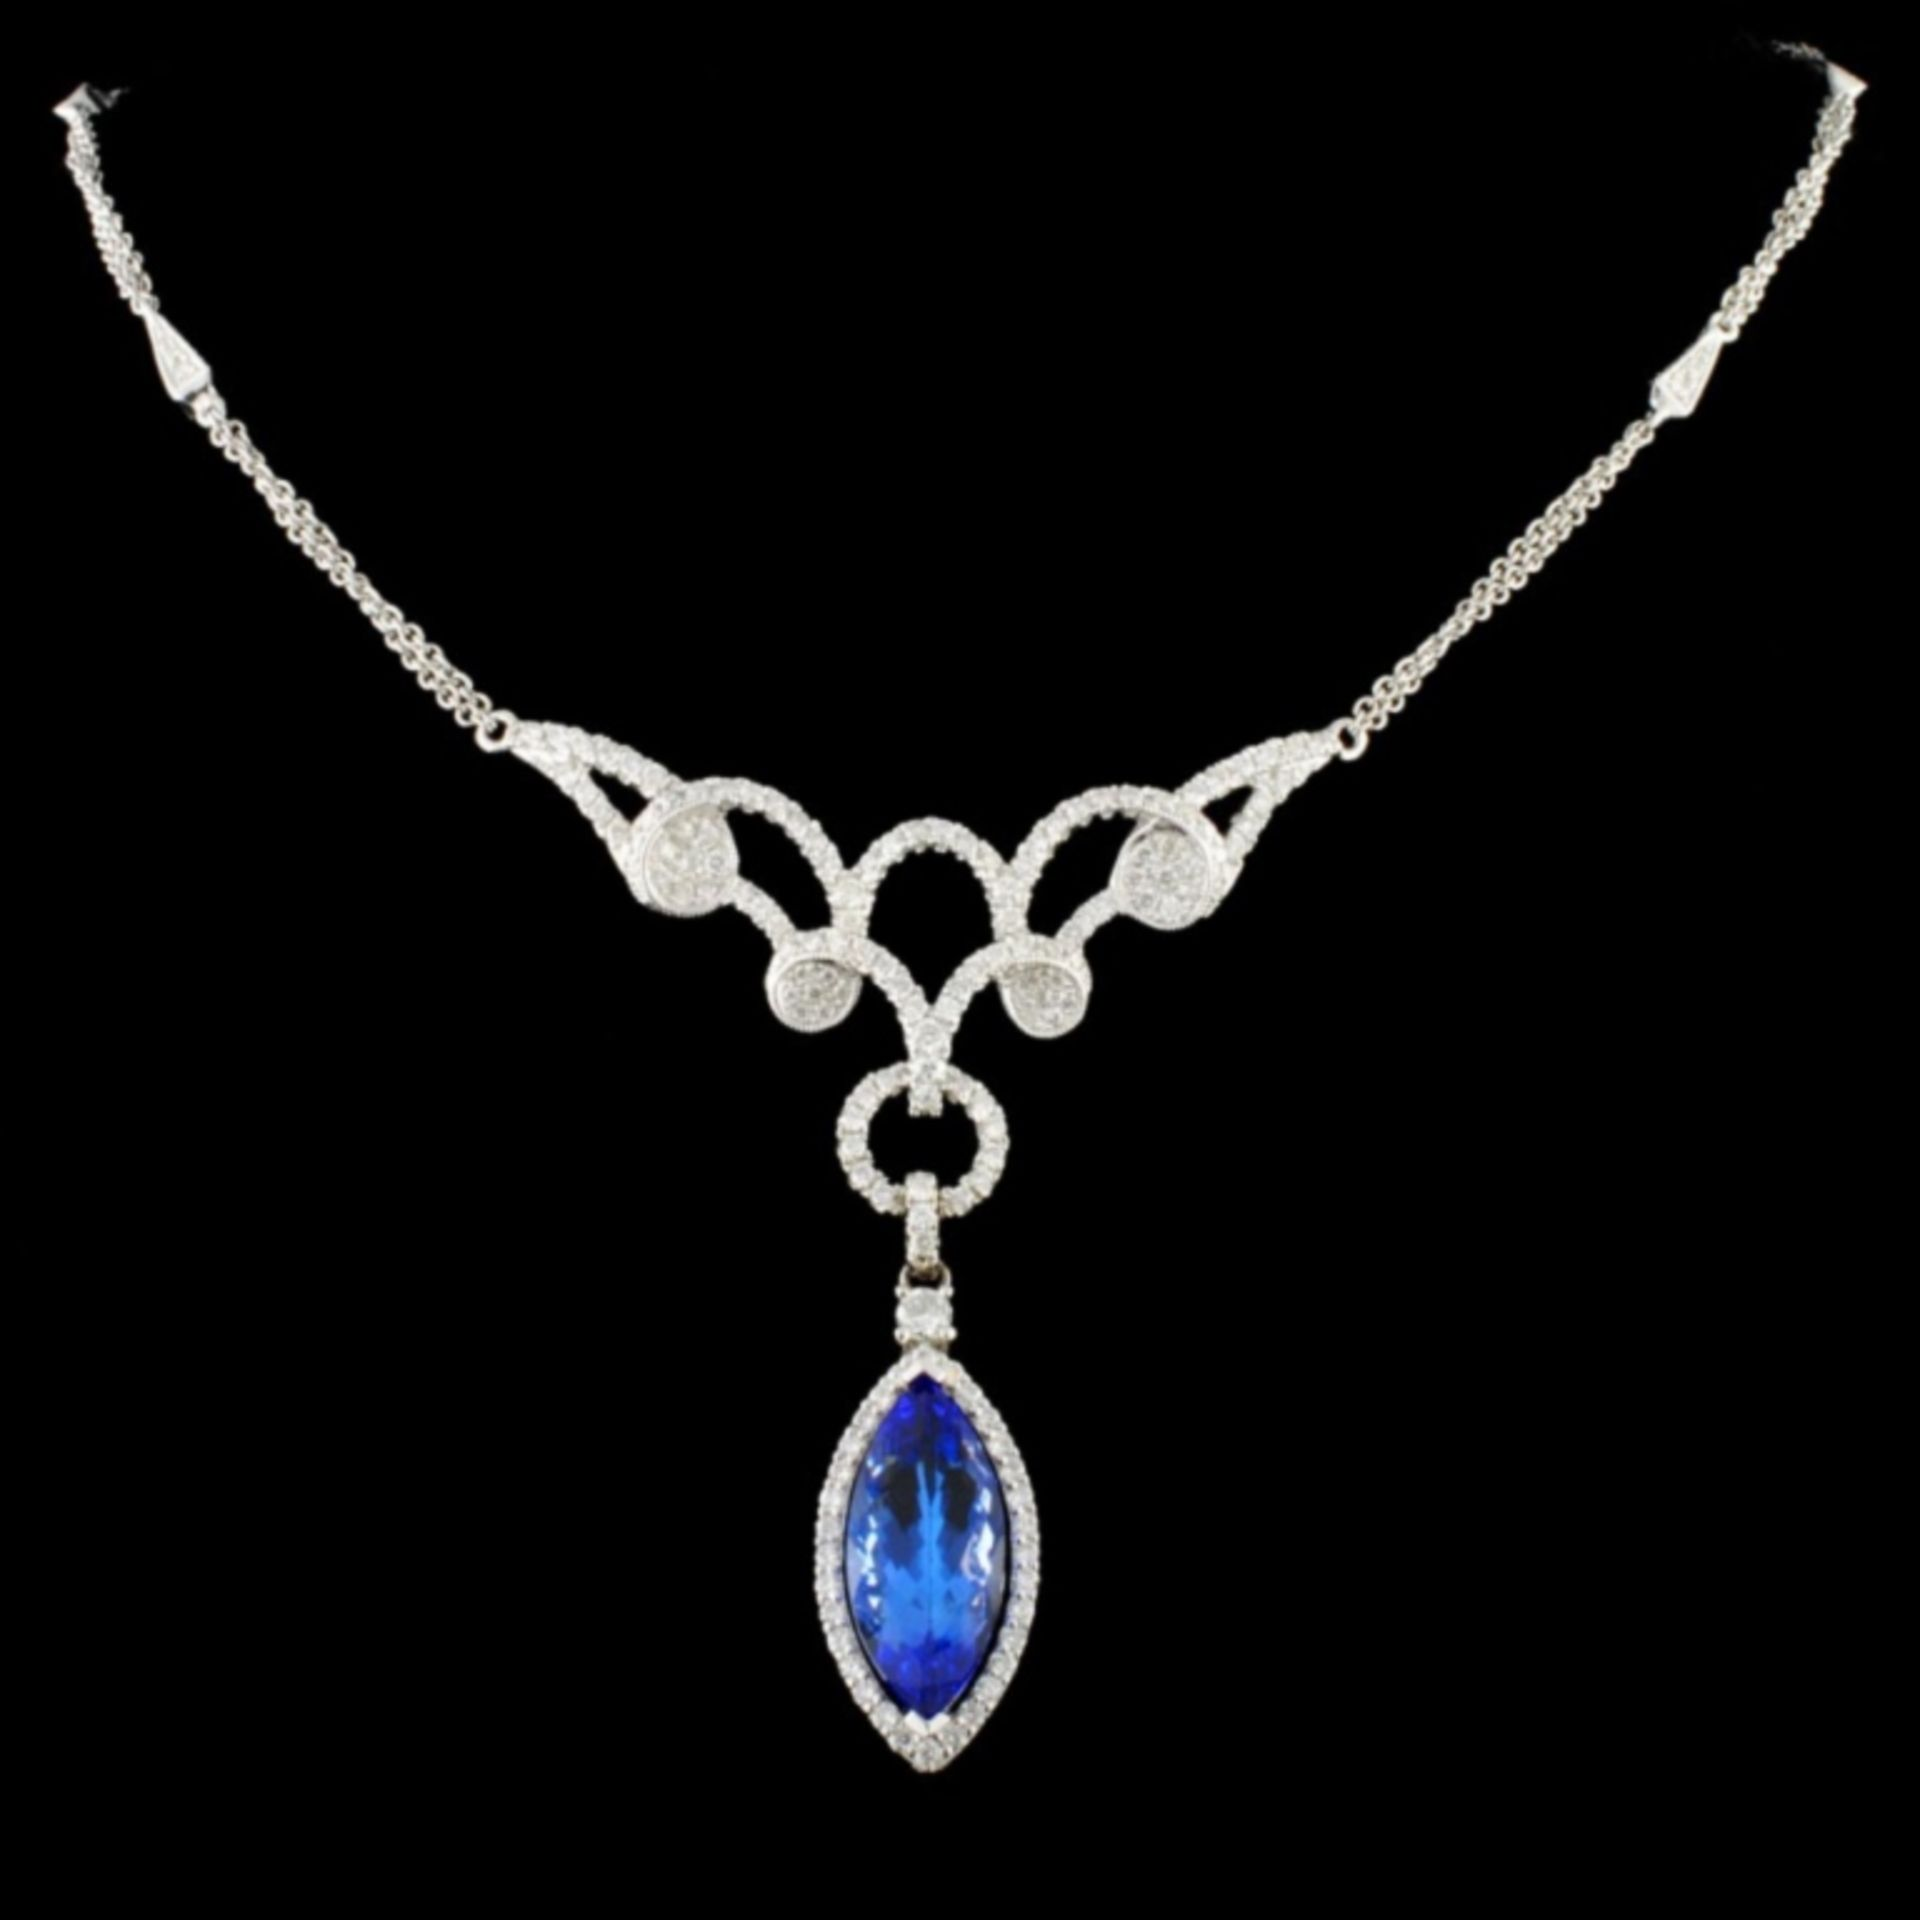 14K Gold 5.20ct Tanzanite & 1.60ctw Diamond Neckla